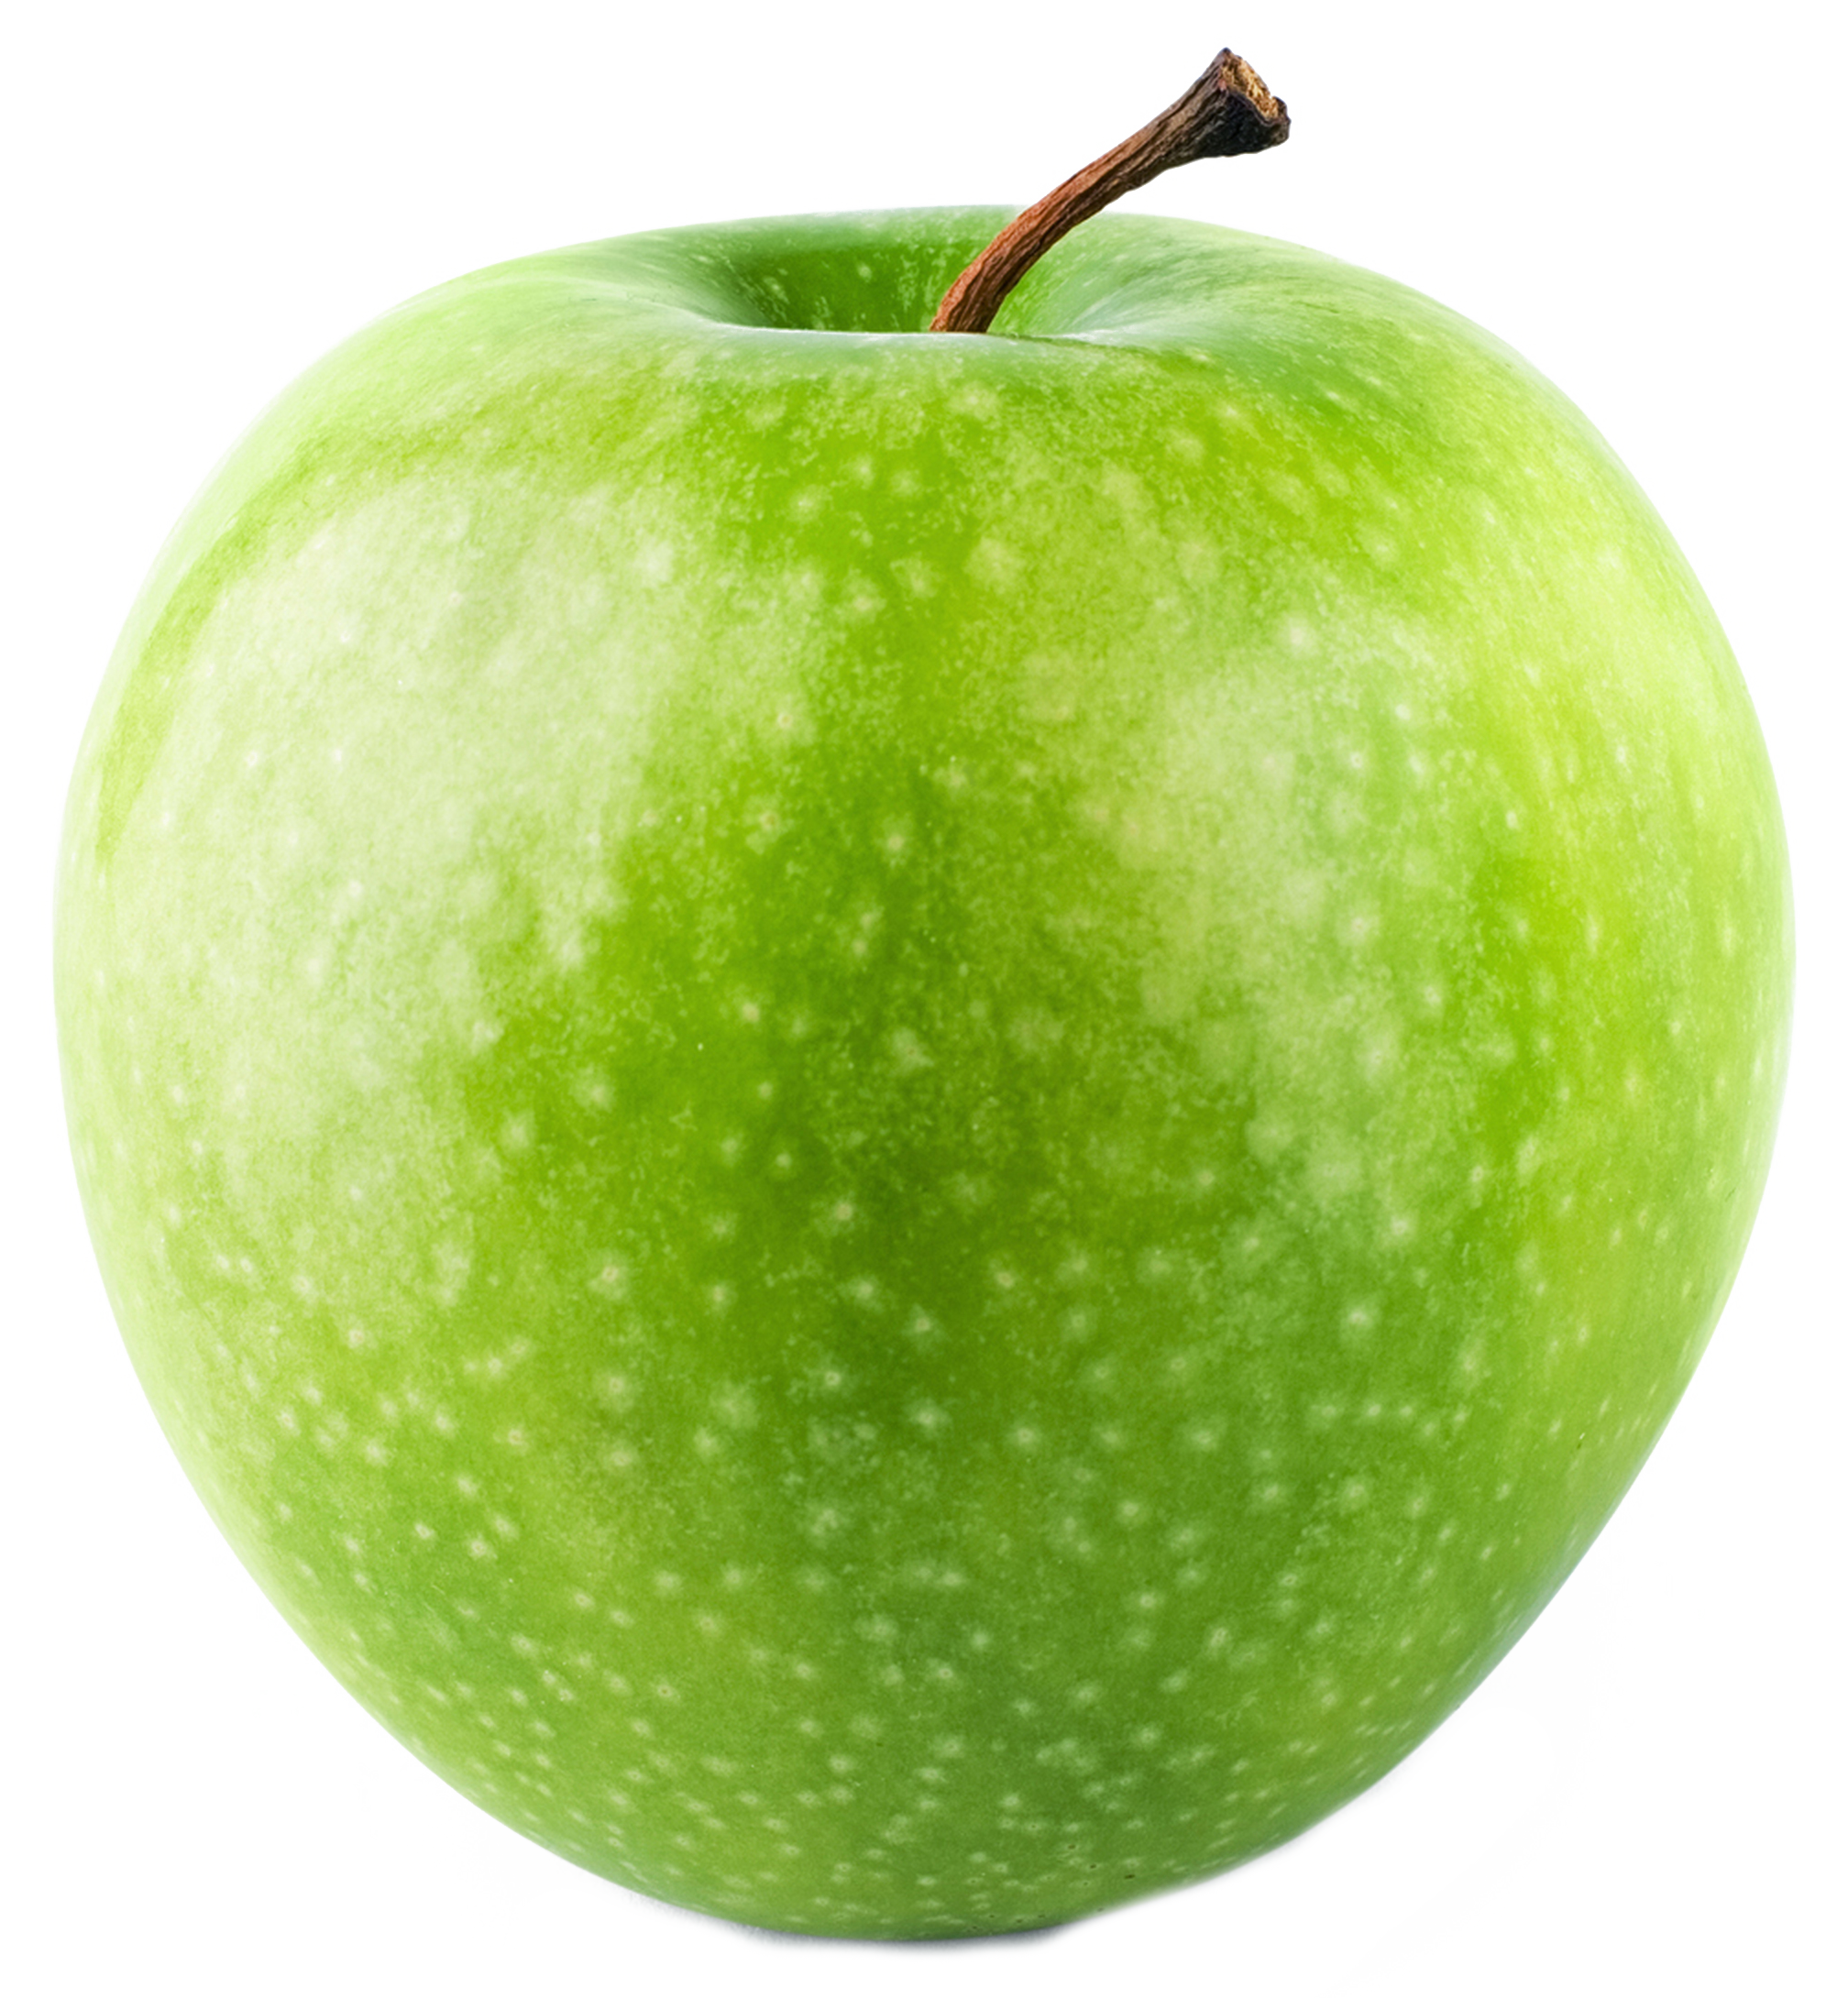 Green apple png. Large clipart gallery yopriceville